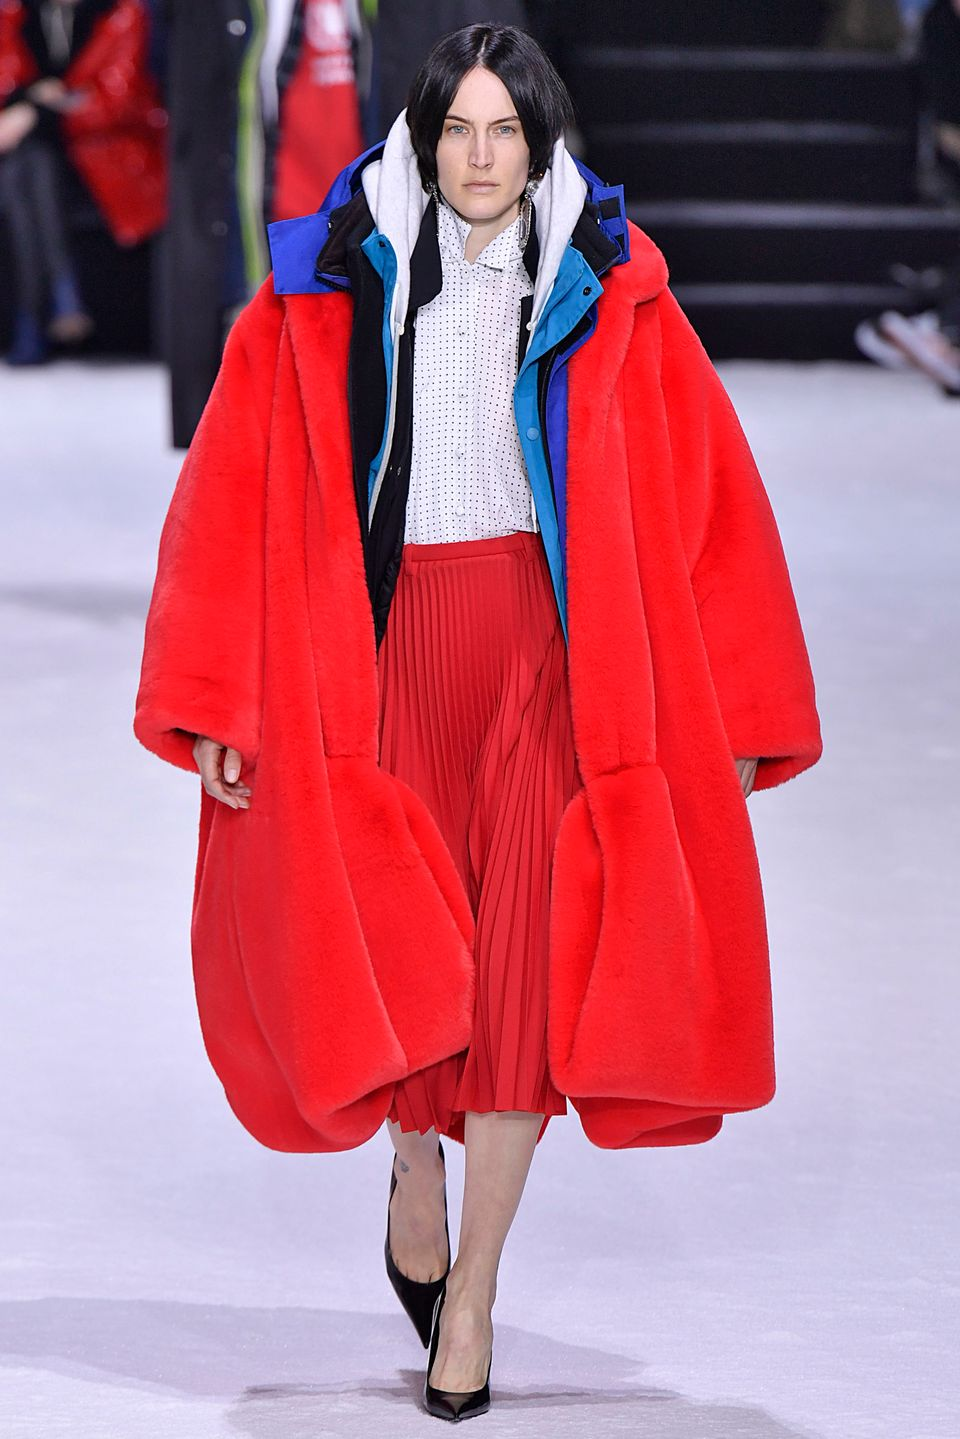 a28e4430d33a Ridiculously Oversized Coats Are Fall 2018's Comfiest Trend ...